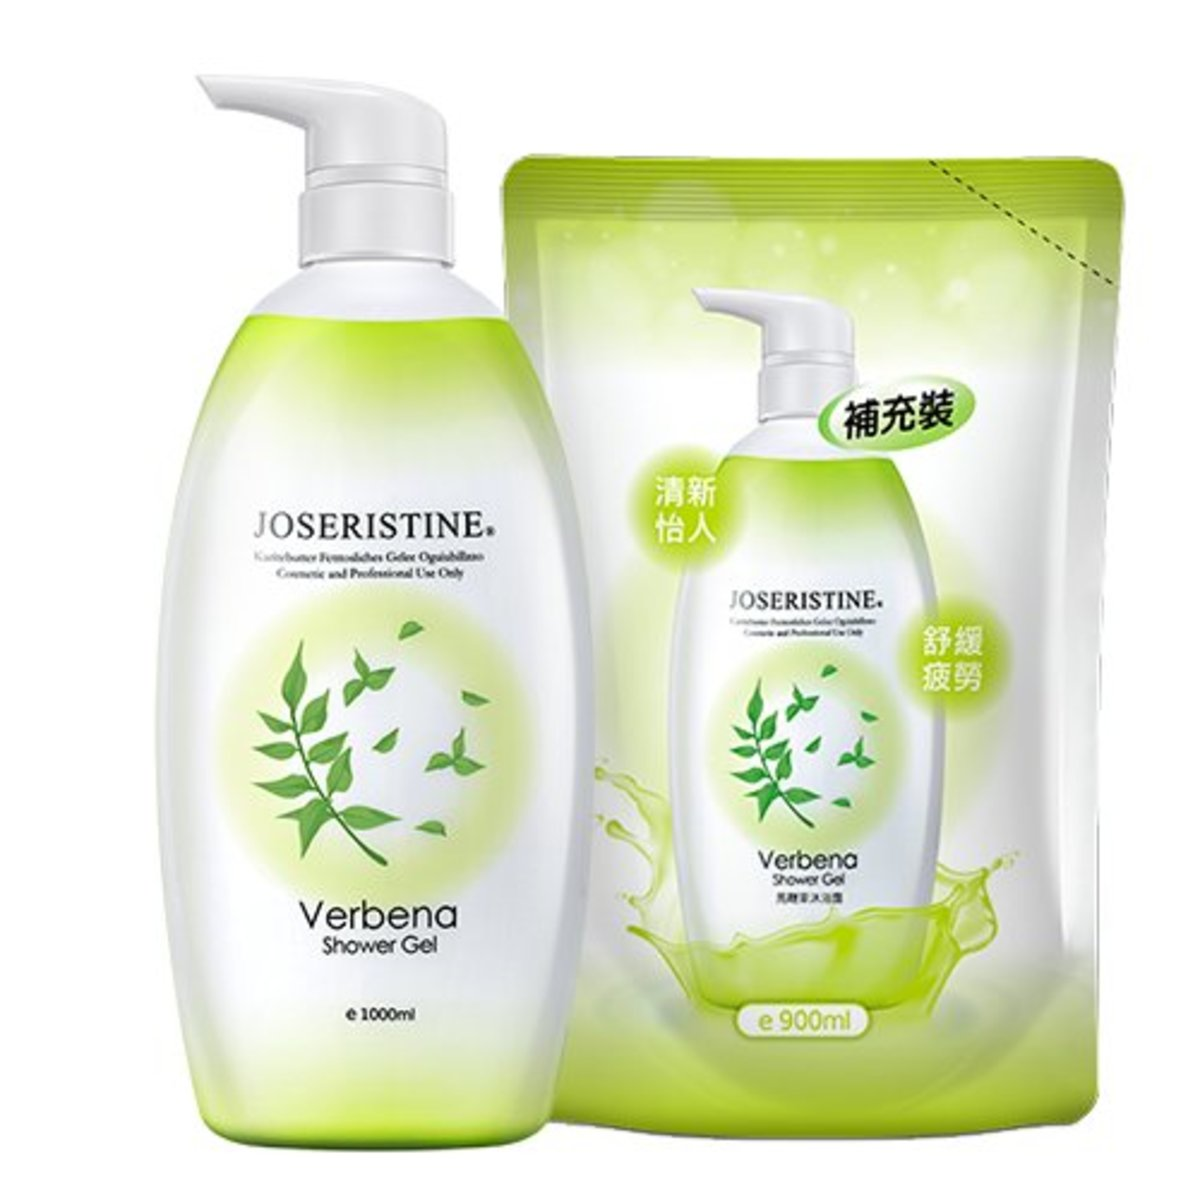 Verbena Shower Gel Bundle